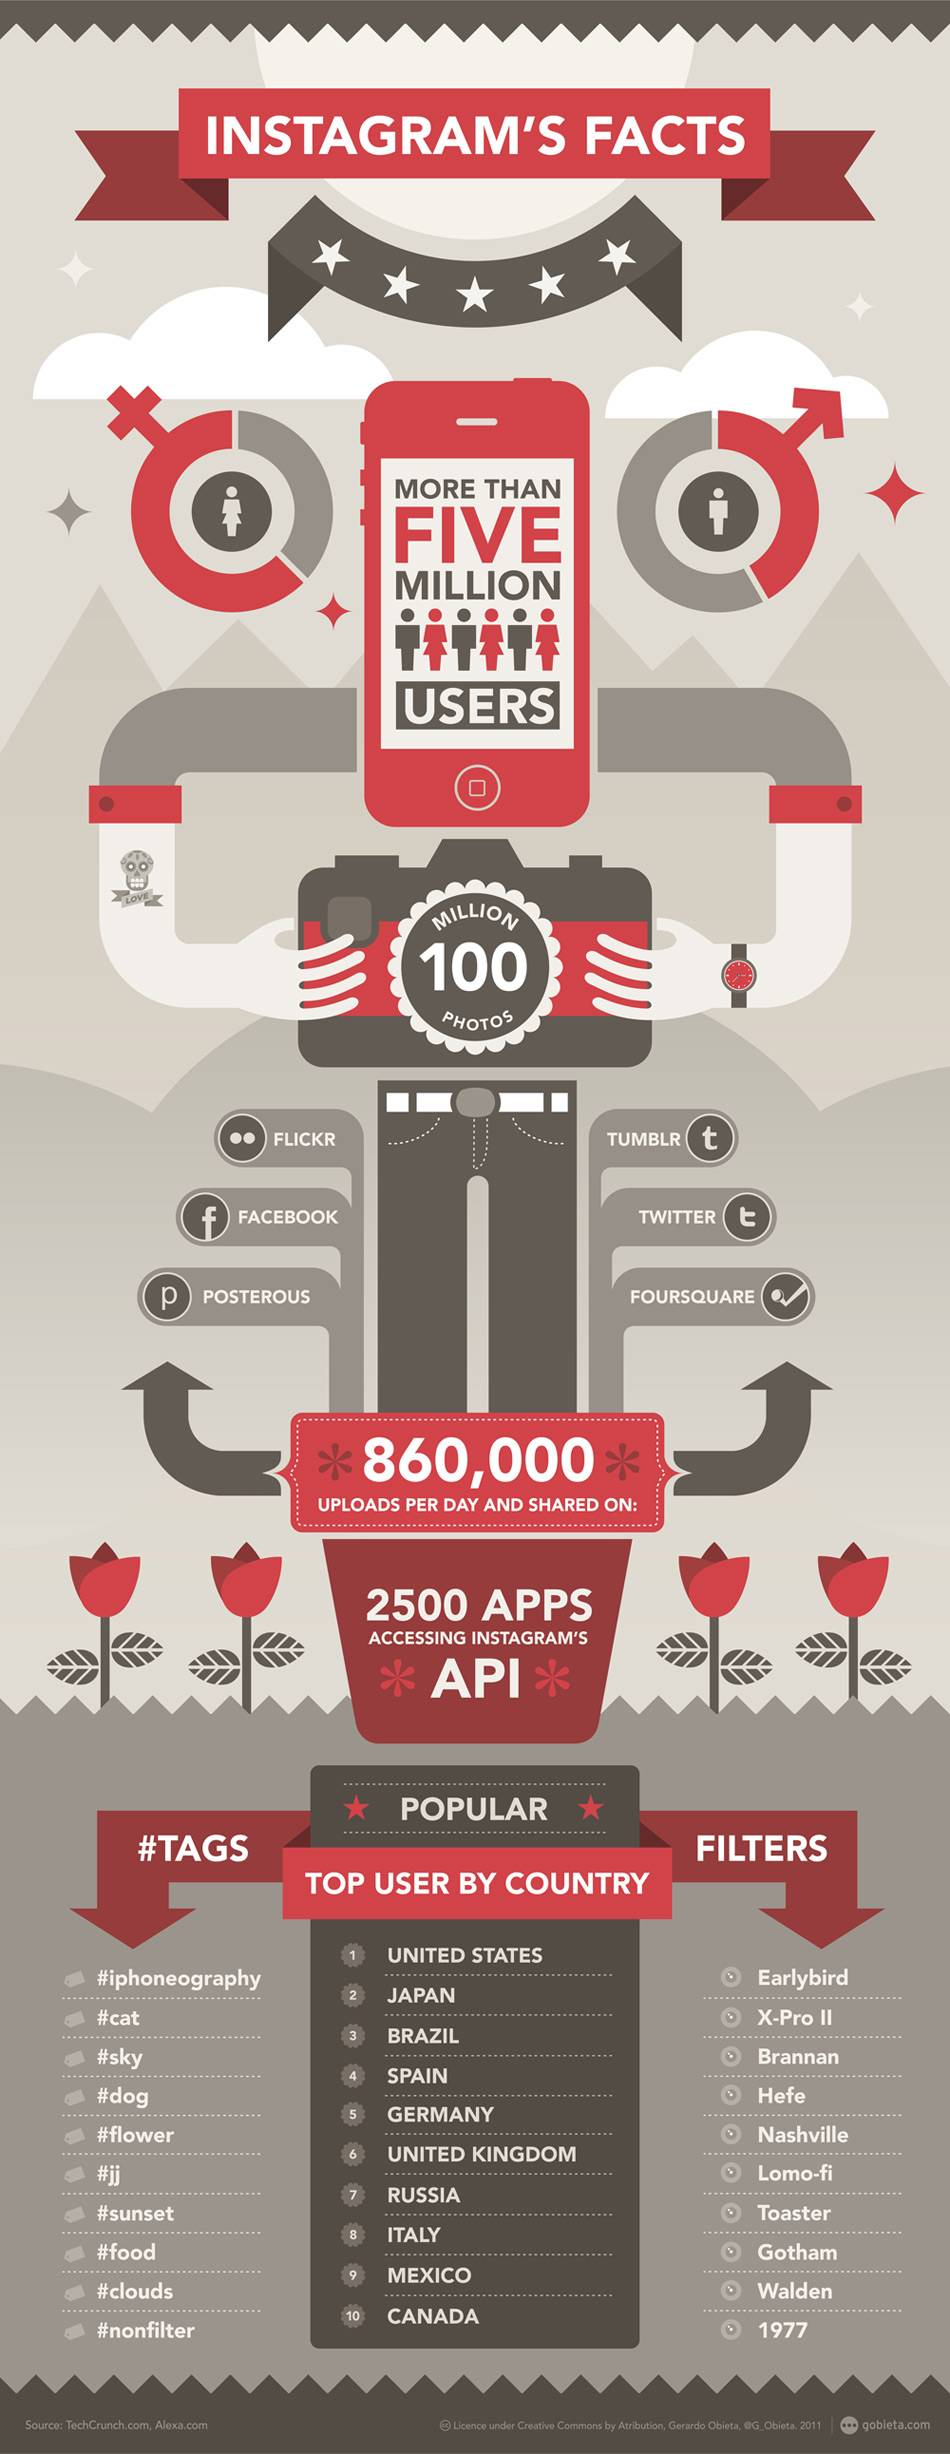 Infography and Facts about Instagram August 2011